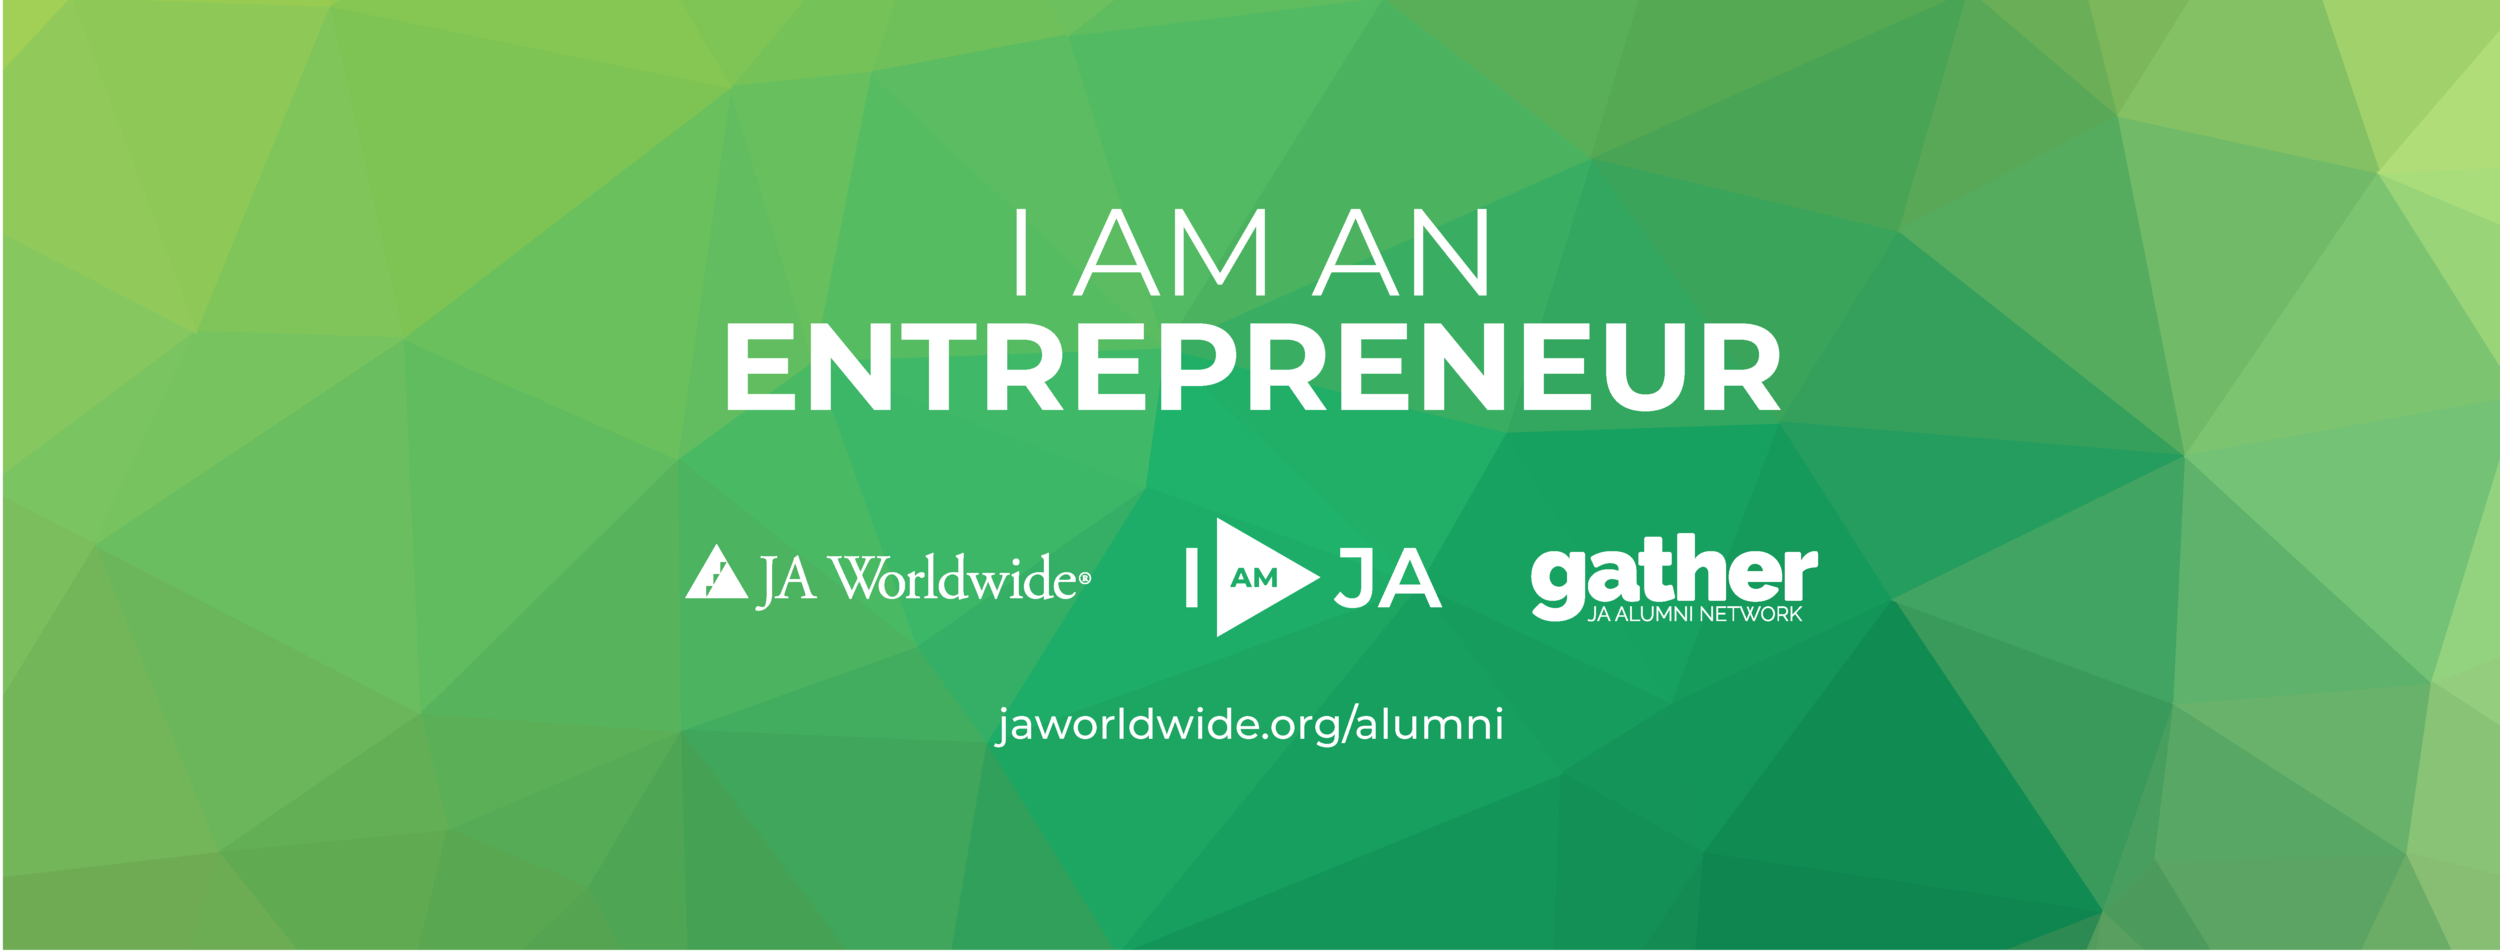 I am an entrepreneur-I am JA-Facebook banner.png